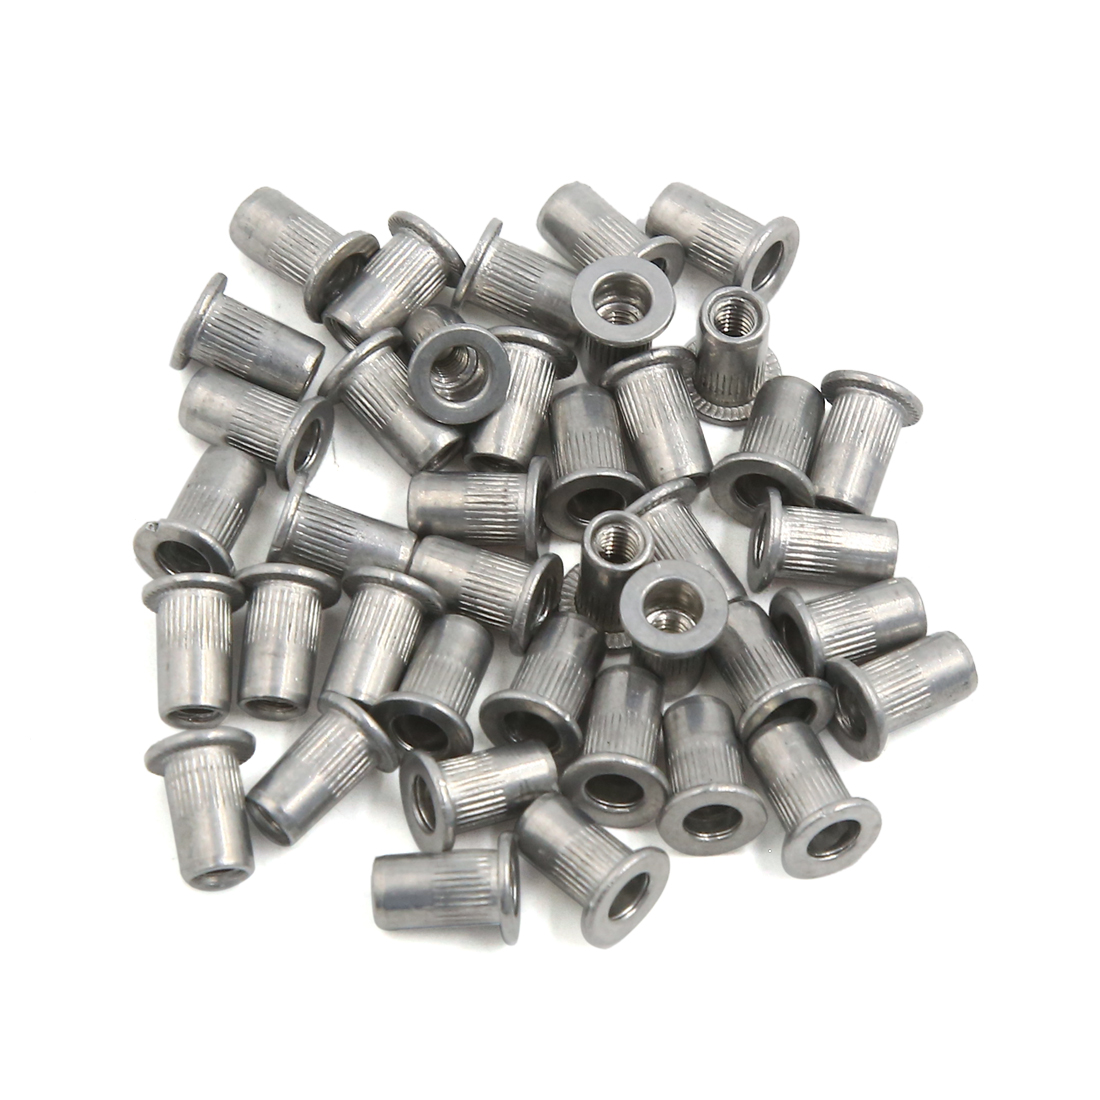 40 Pcs M4 Car Aluminum Alloy Thread Flat Head Rivet Nut Insert Nutserts